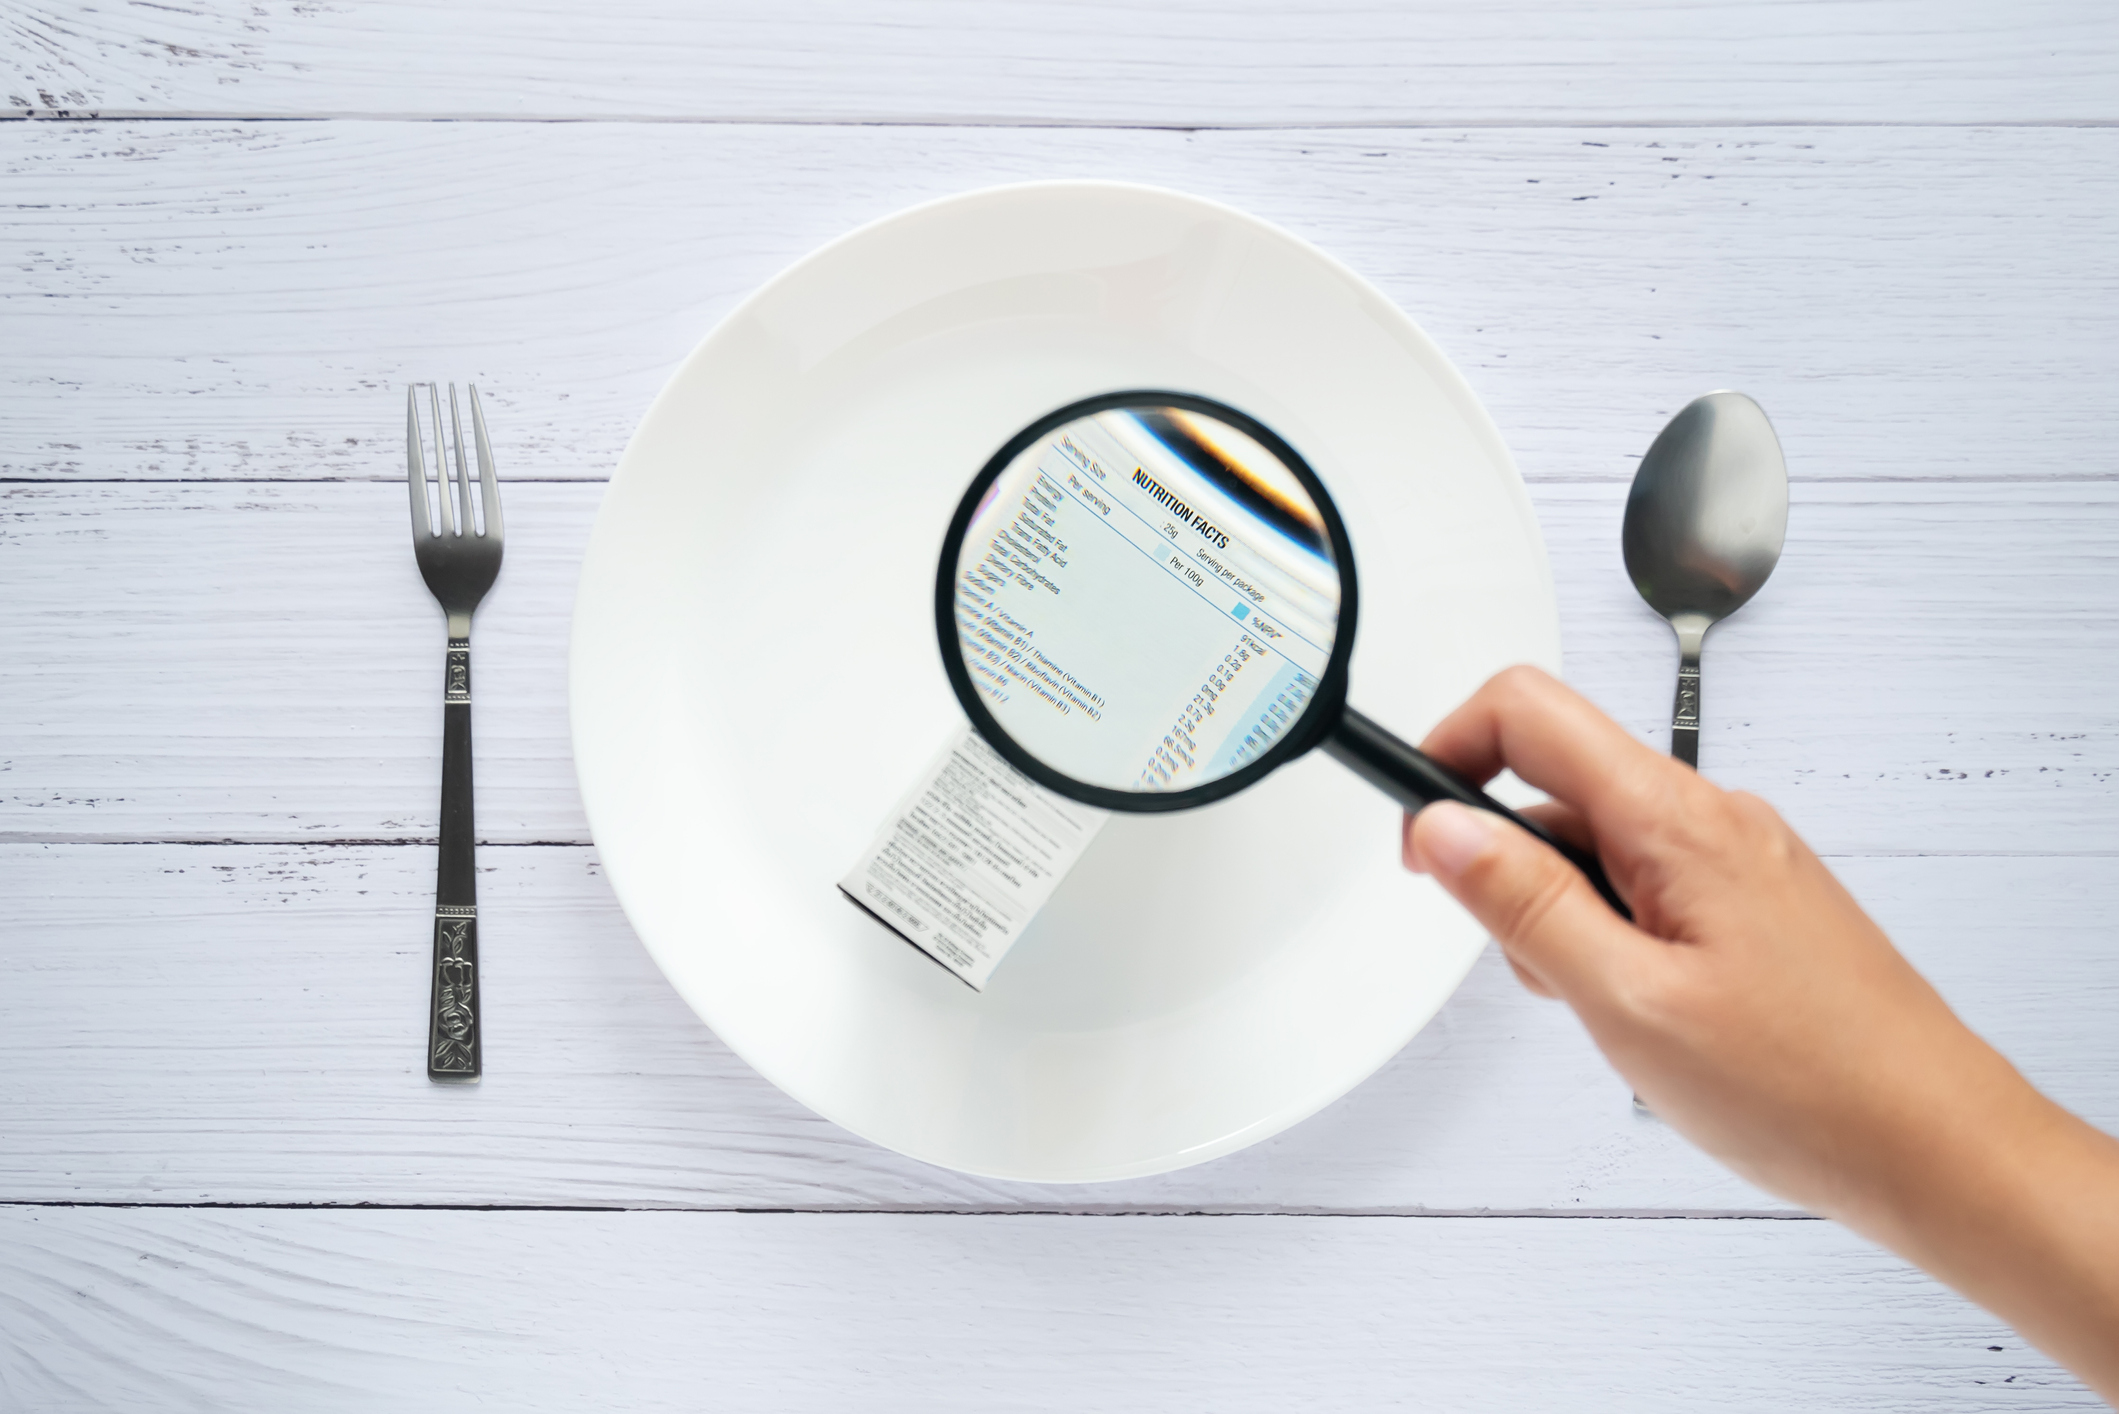 hand use the magnifying glass to zoom in to see the details of the nutrition facts label on the side of the consumer product box on white dish